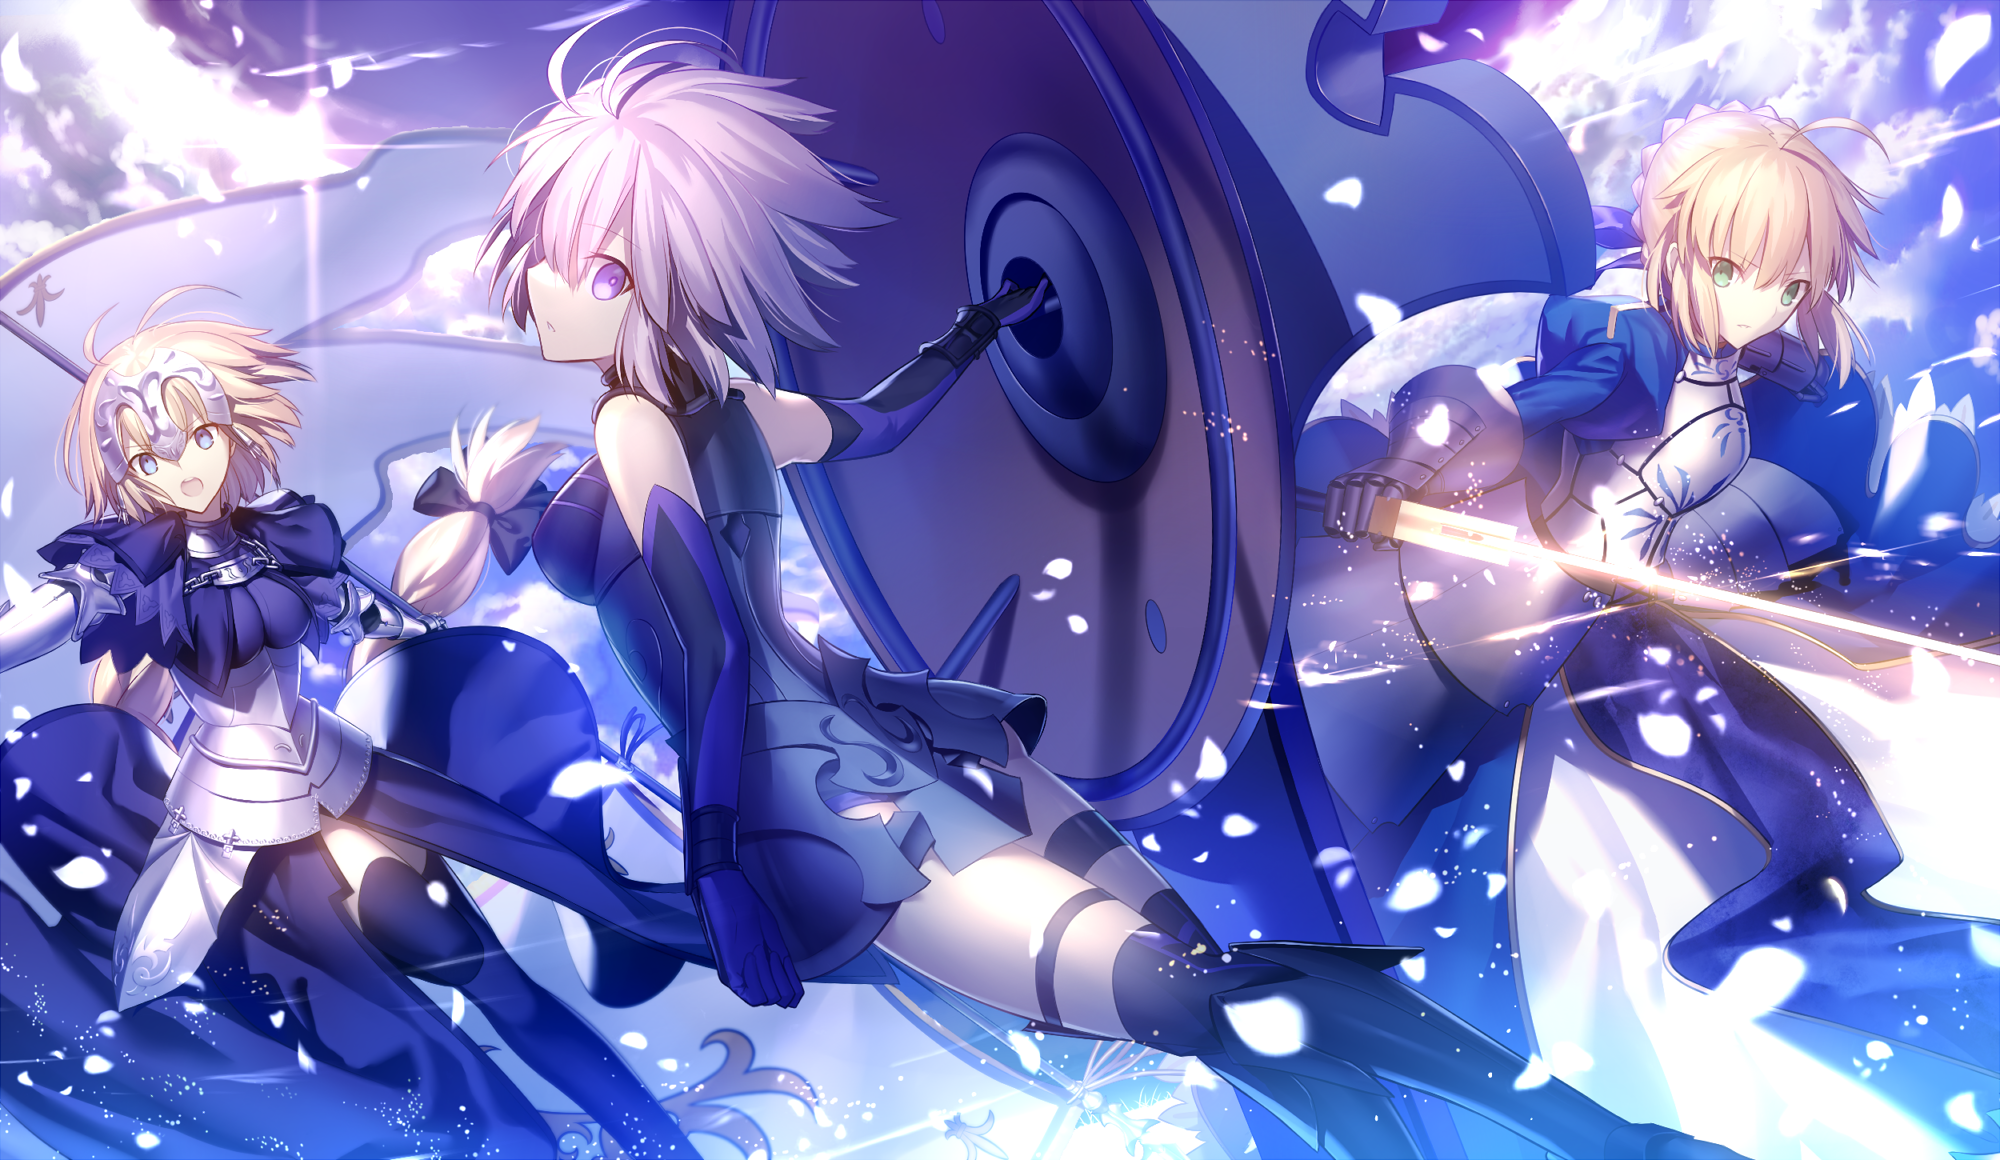 4933 Fate Series Hd Wallpapers Background Images Wallpaper Abyss